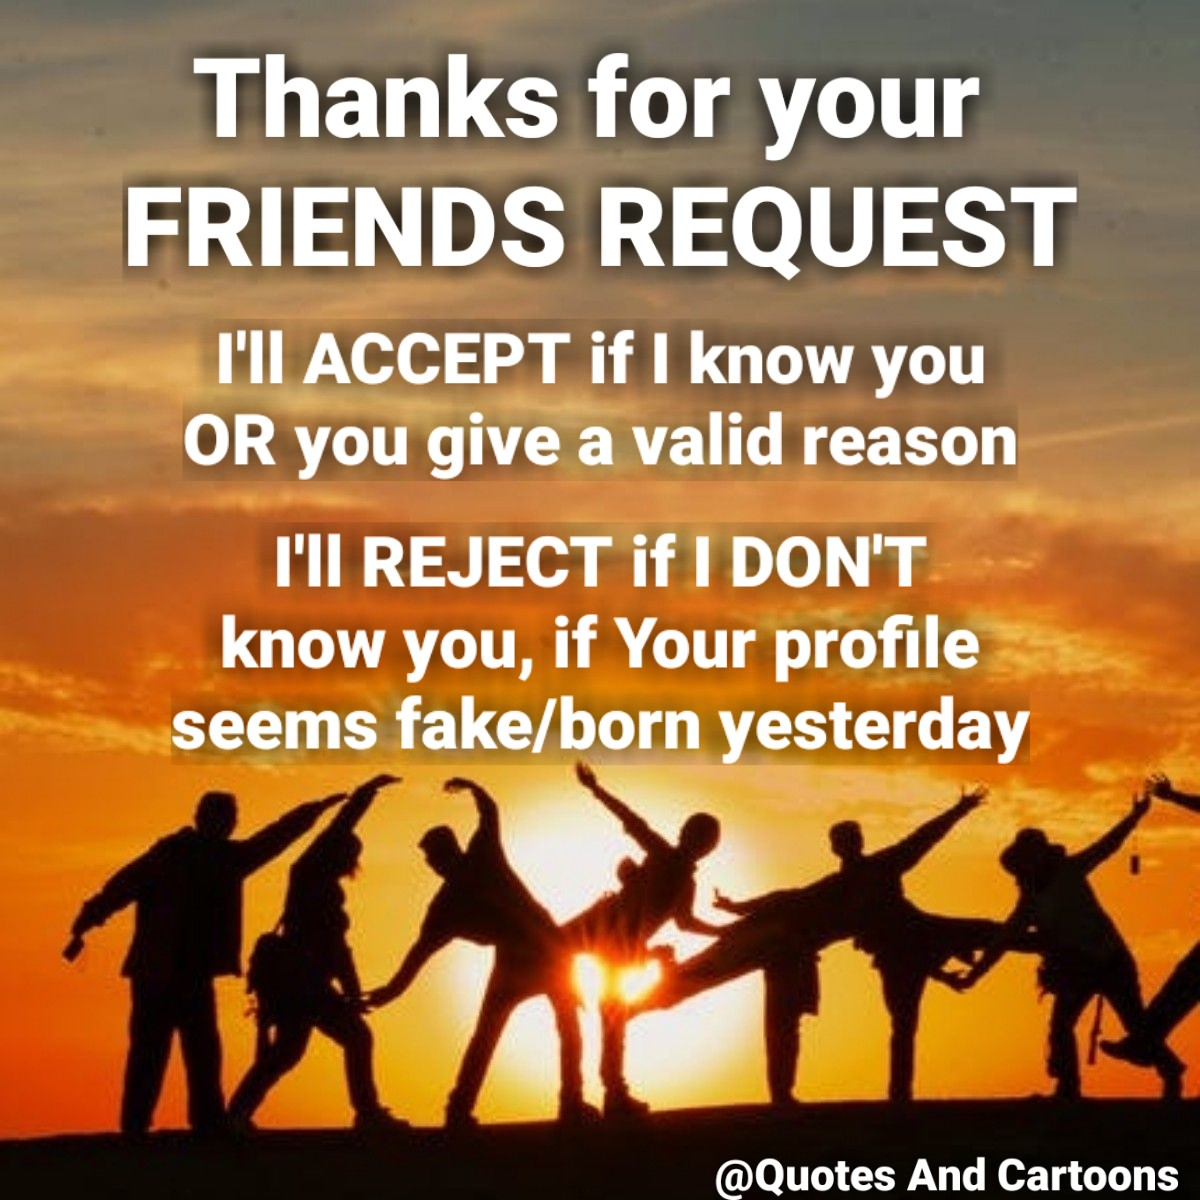 friends request quotes and cartoons